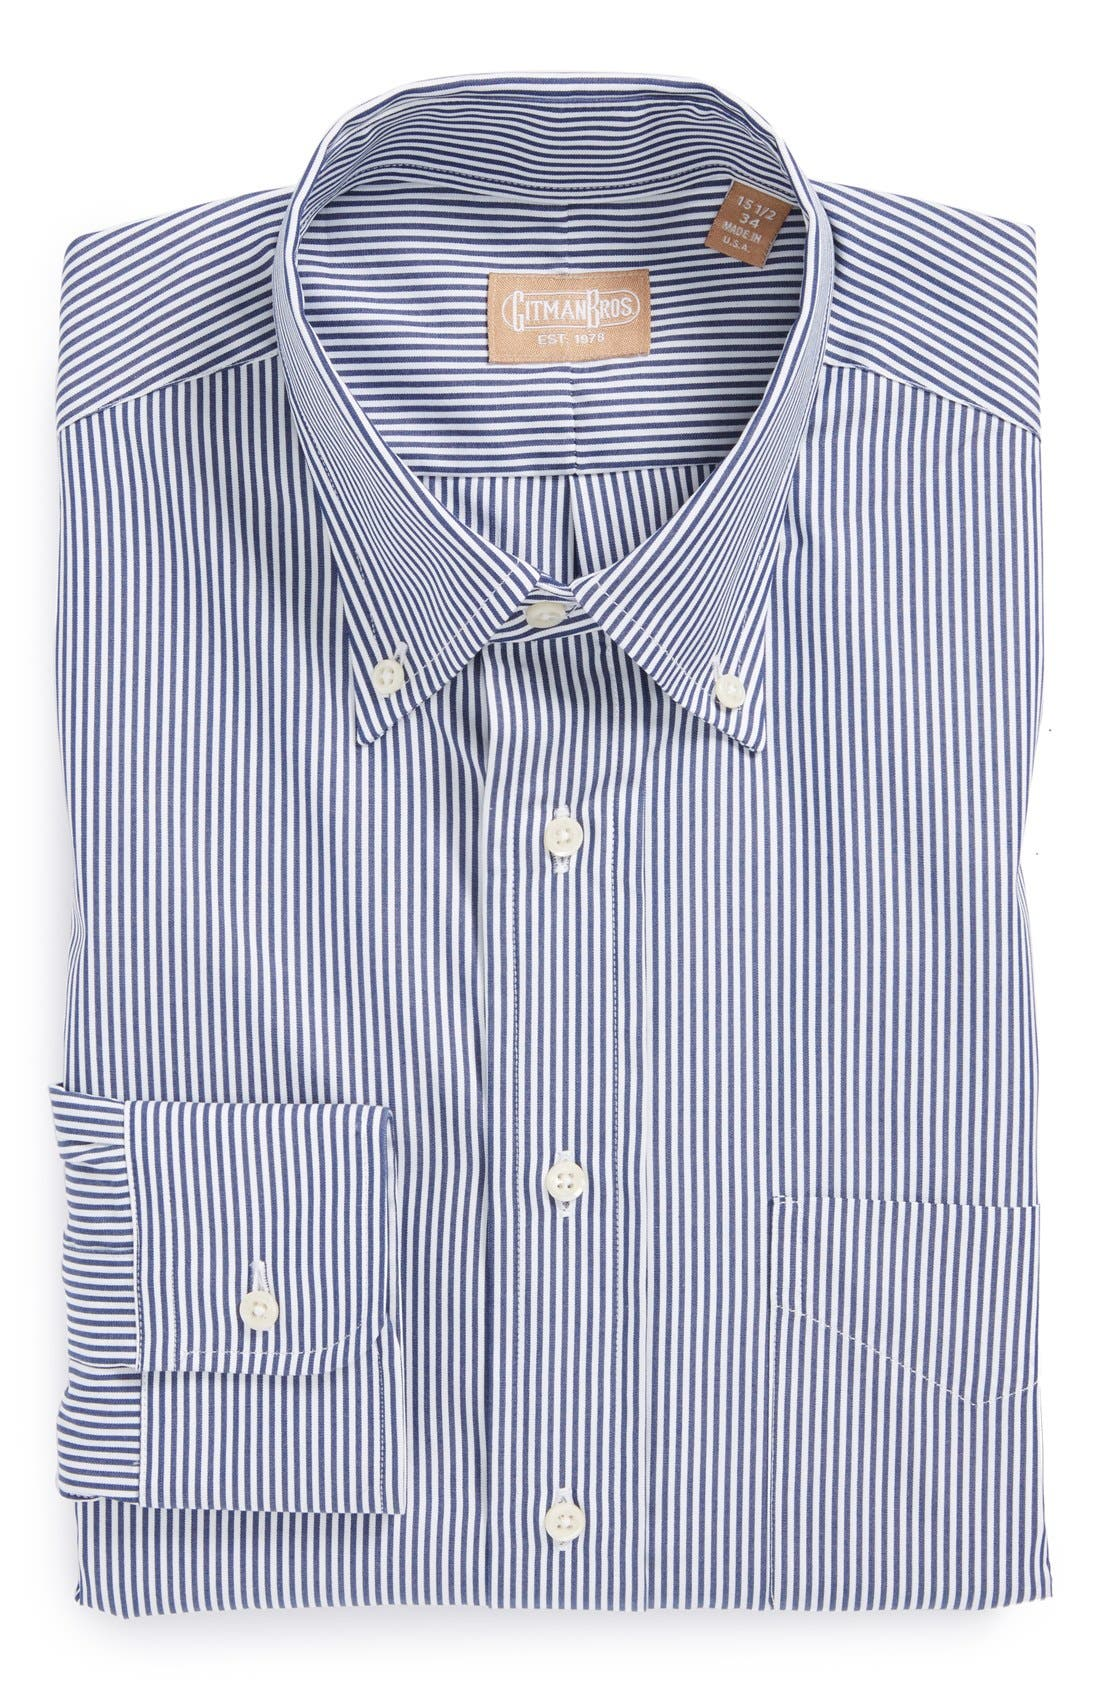 Gitman Regular Fit Bengal Stripe Cotton Broadcloth Button Down Dress Shirt